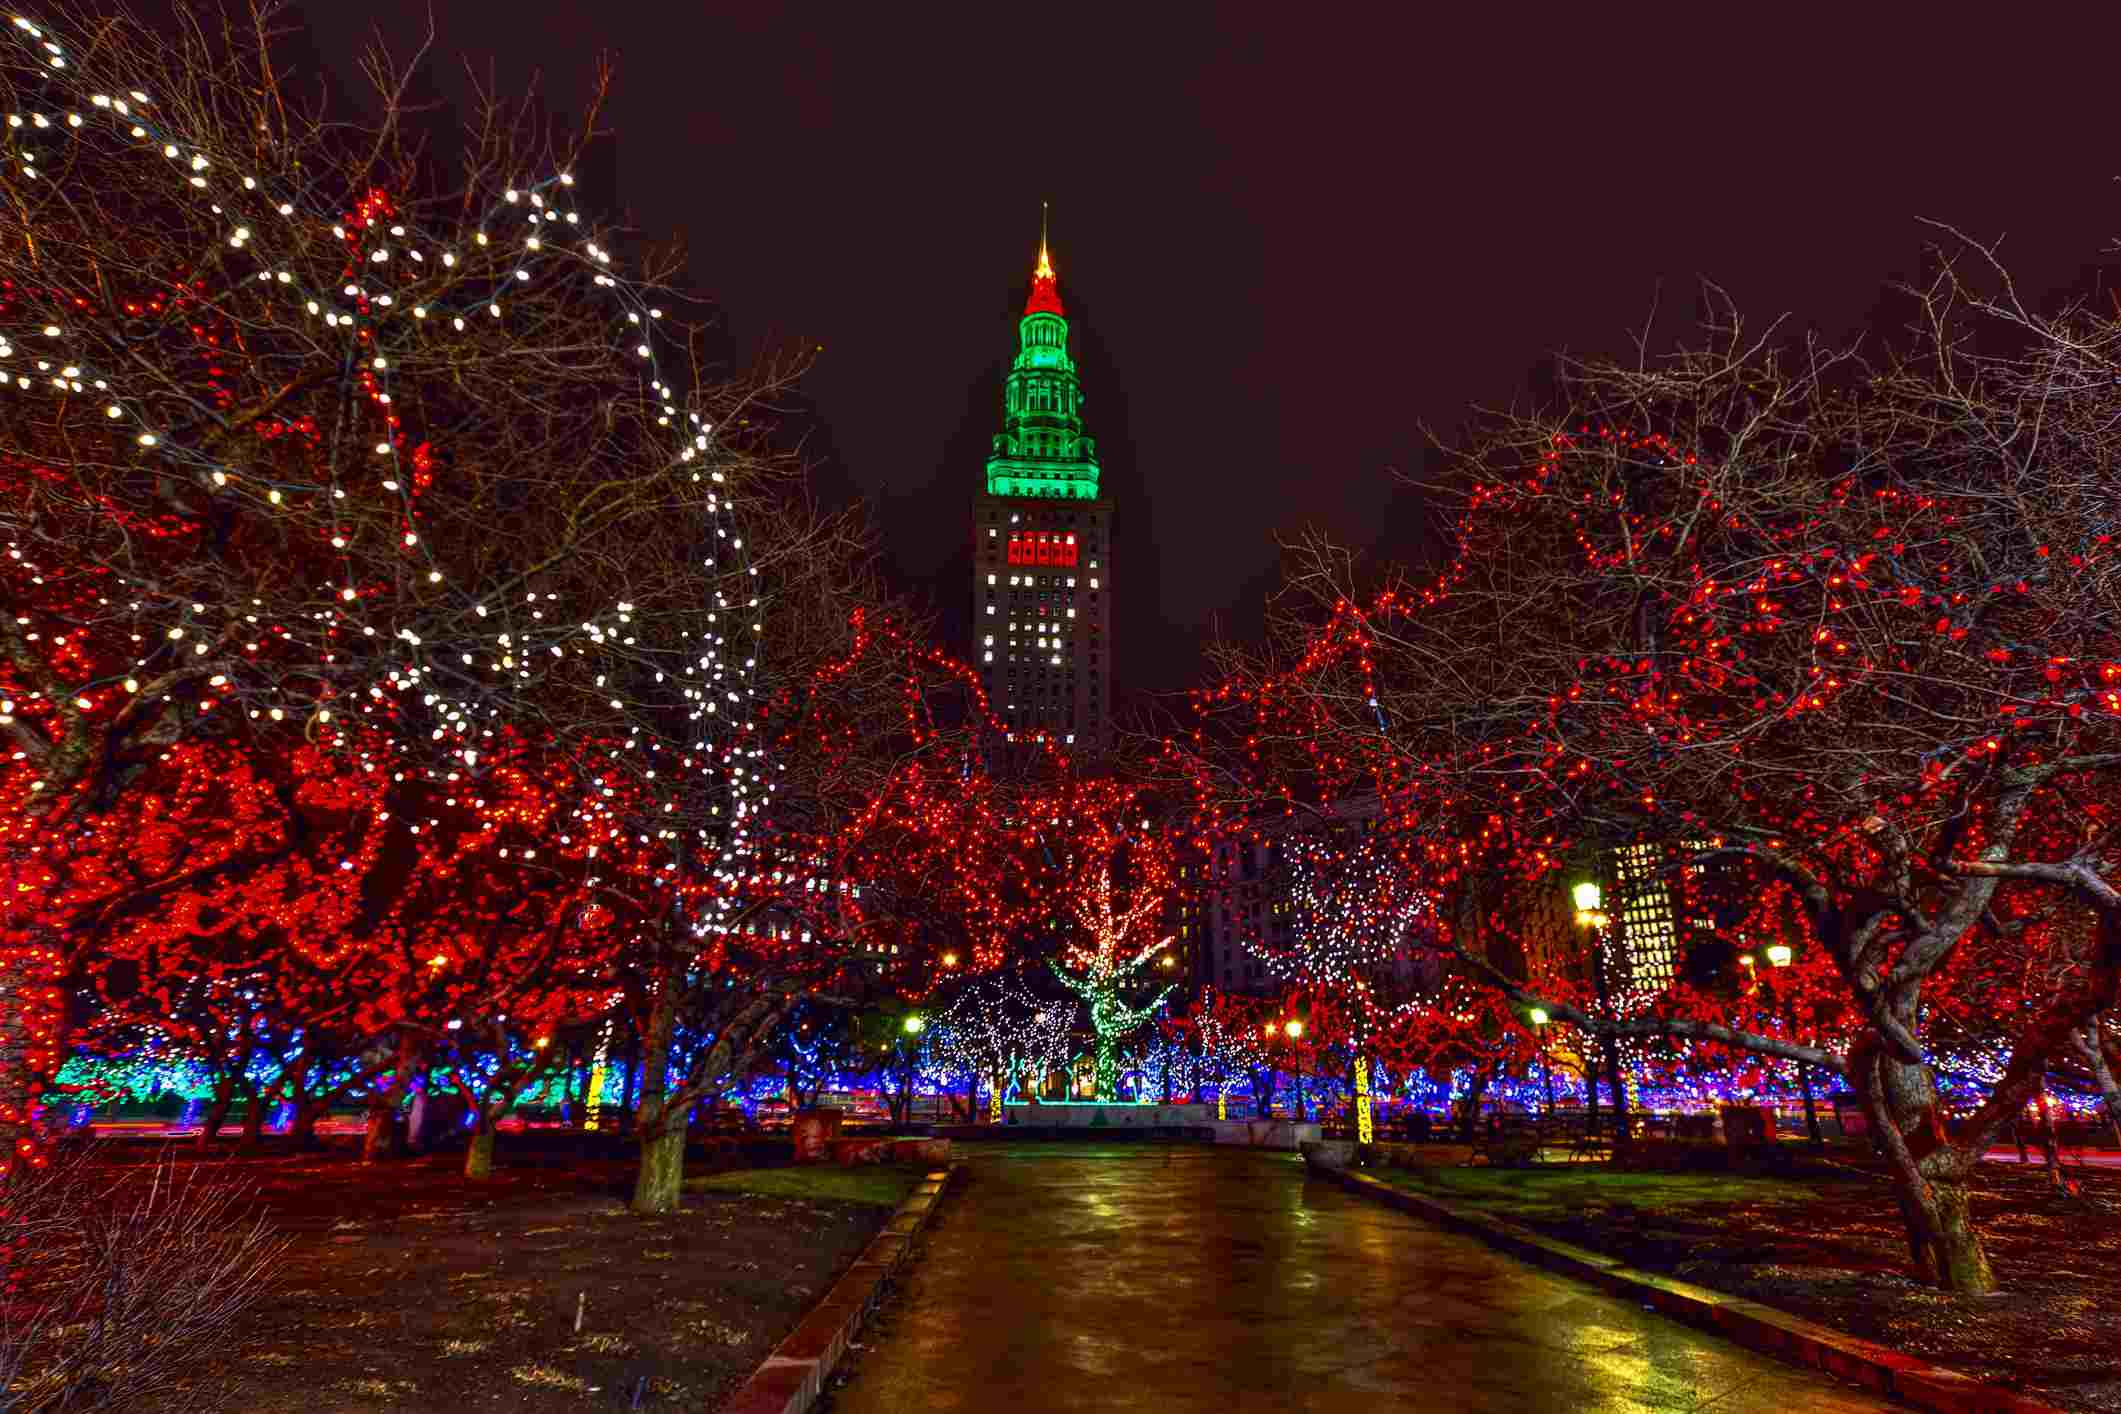 Blossom Music Center Christmas Lights 2019 Cleveland and Northeast Ohio Holiday Lights